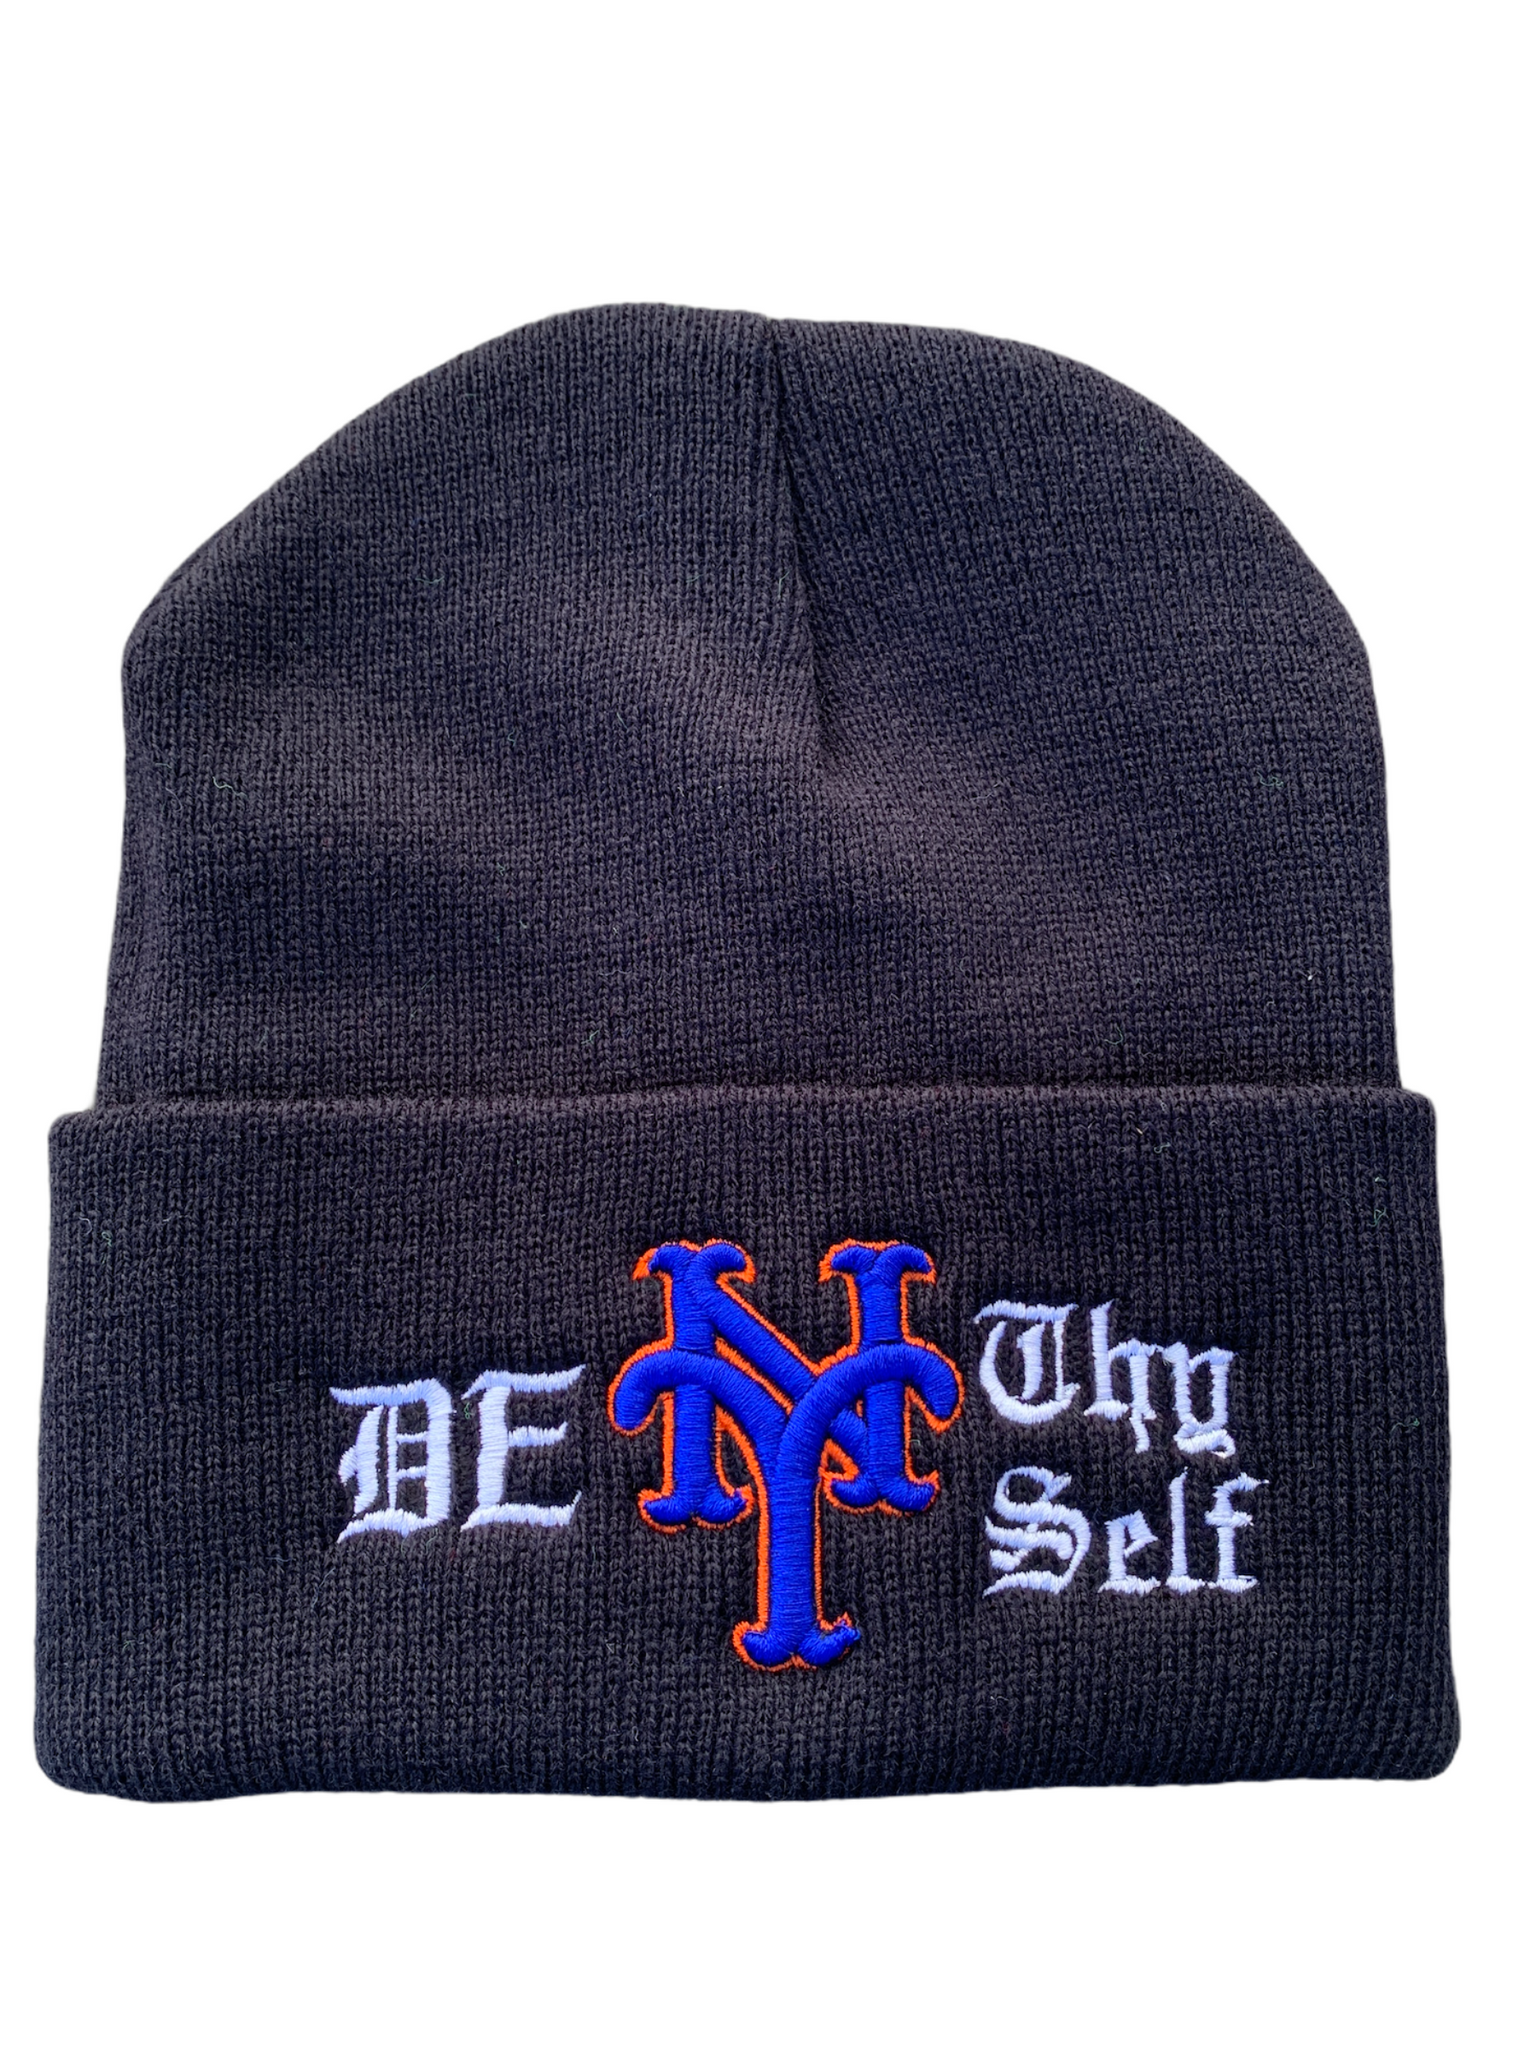 DENY THY SELF WATCH CAP (BLACK)